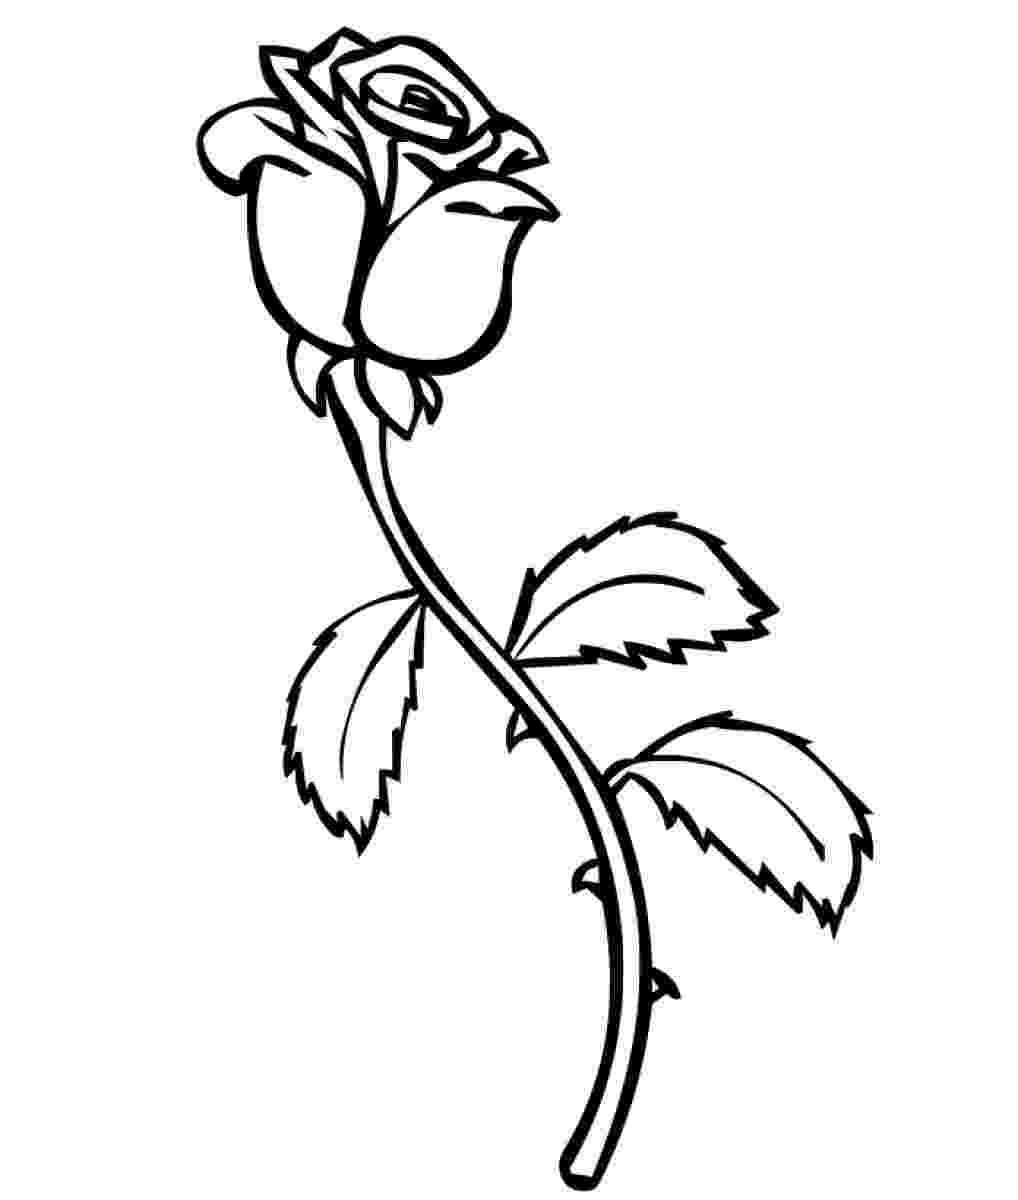 roses for coloring free printable roses coloring pages for kids for coloring roses